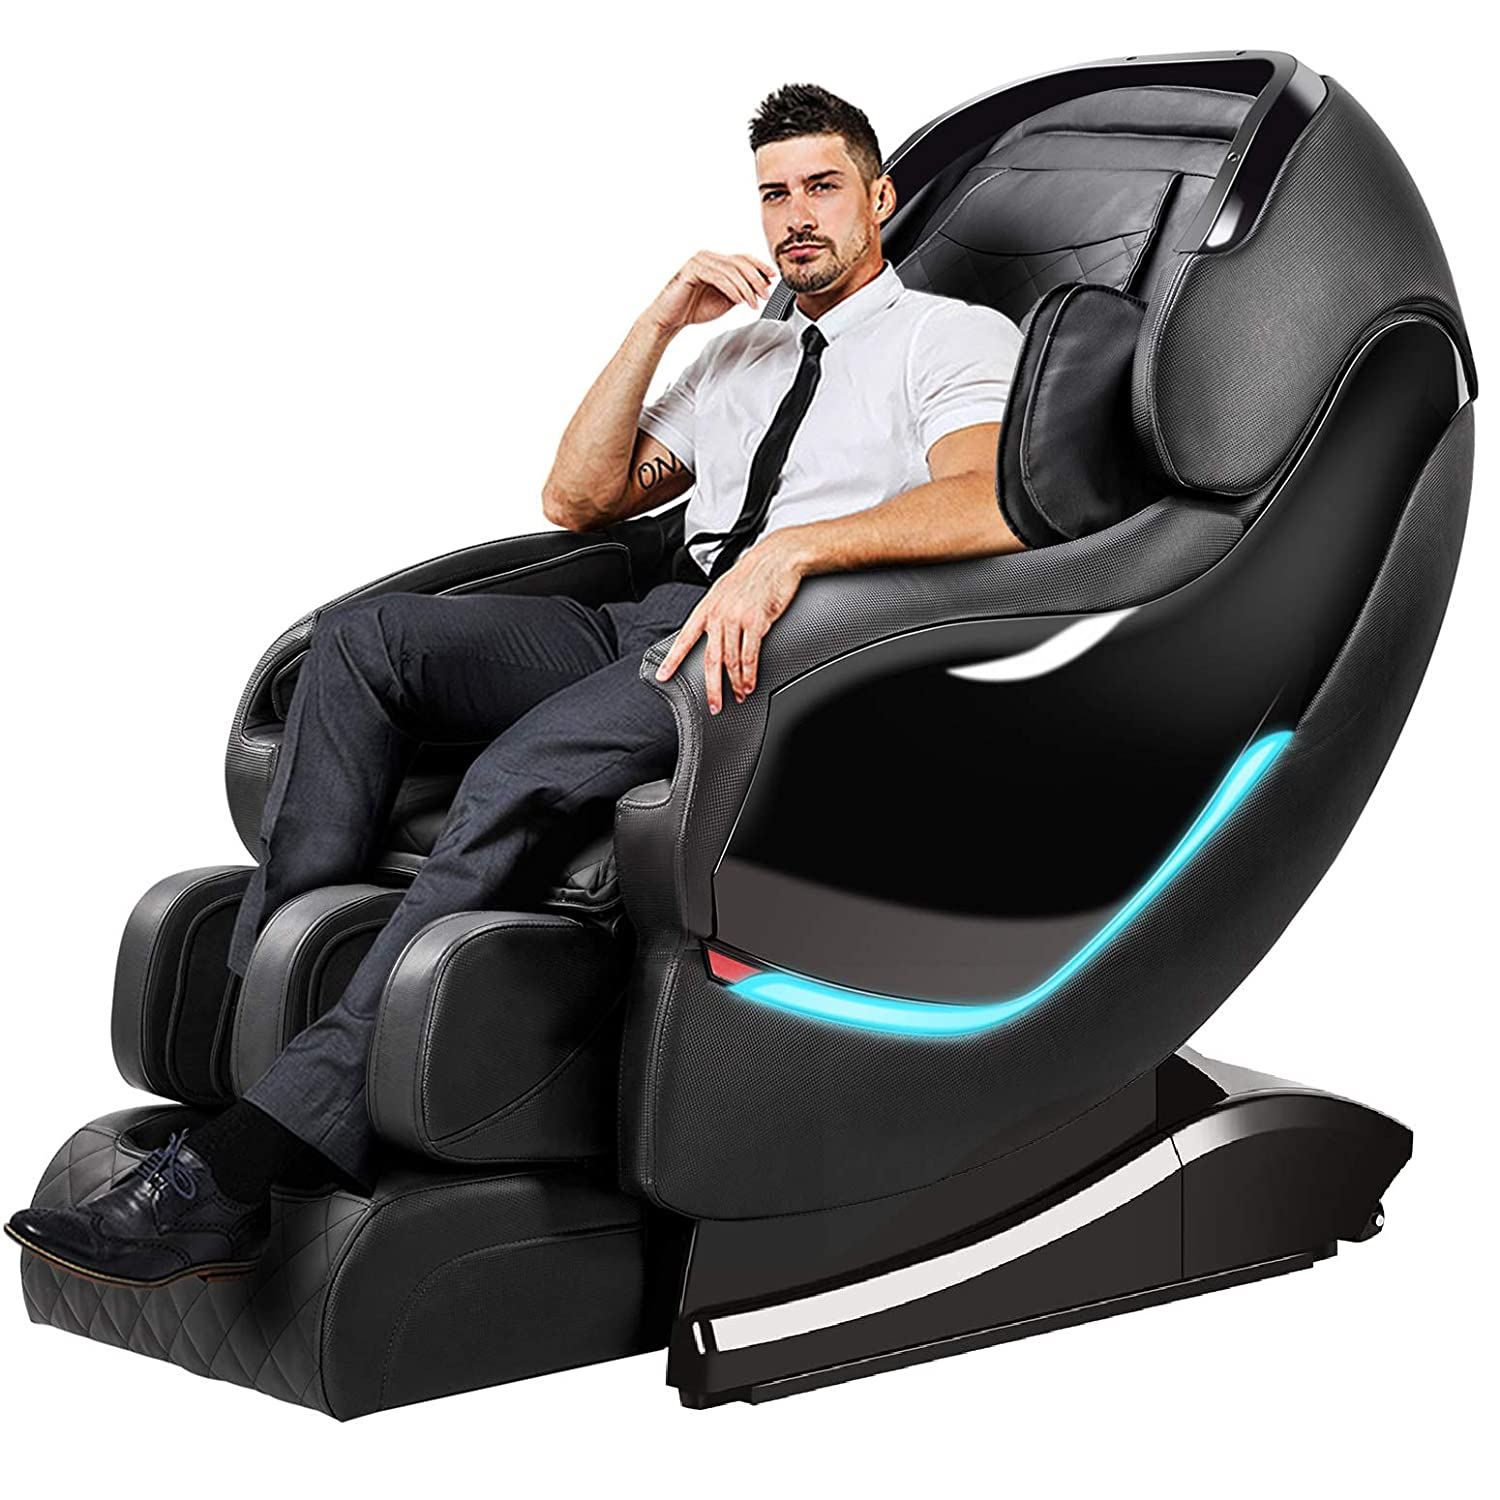 OOTORI Massage Chair Recliner, SL-Track Zero Gravity, Full Body Shiatsu Electric Massage Chair with Tapping Heating Stretching Swedish Massage Back and Foot Massagers Black